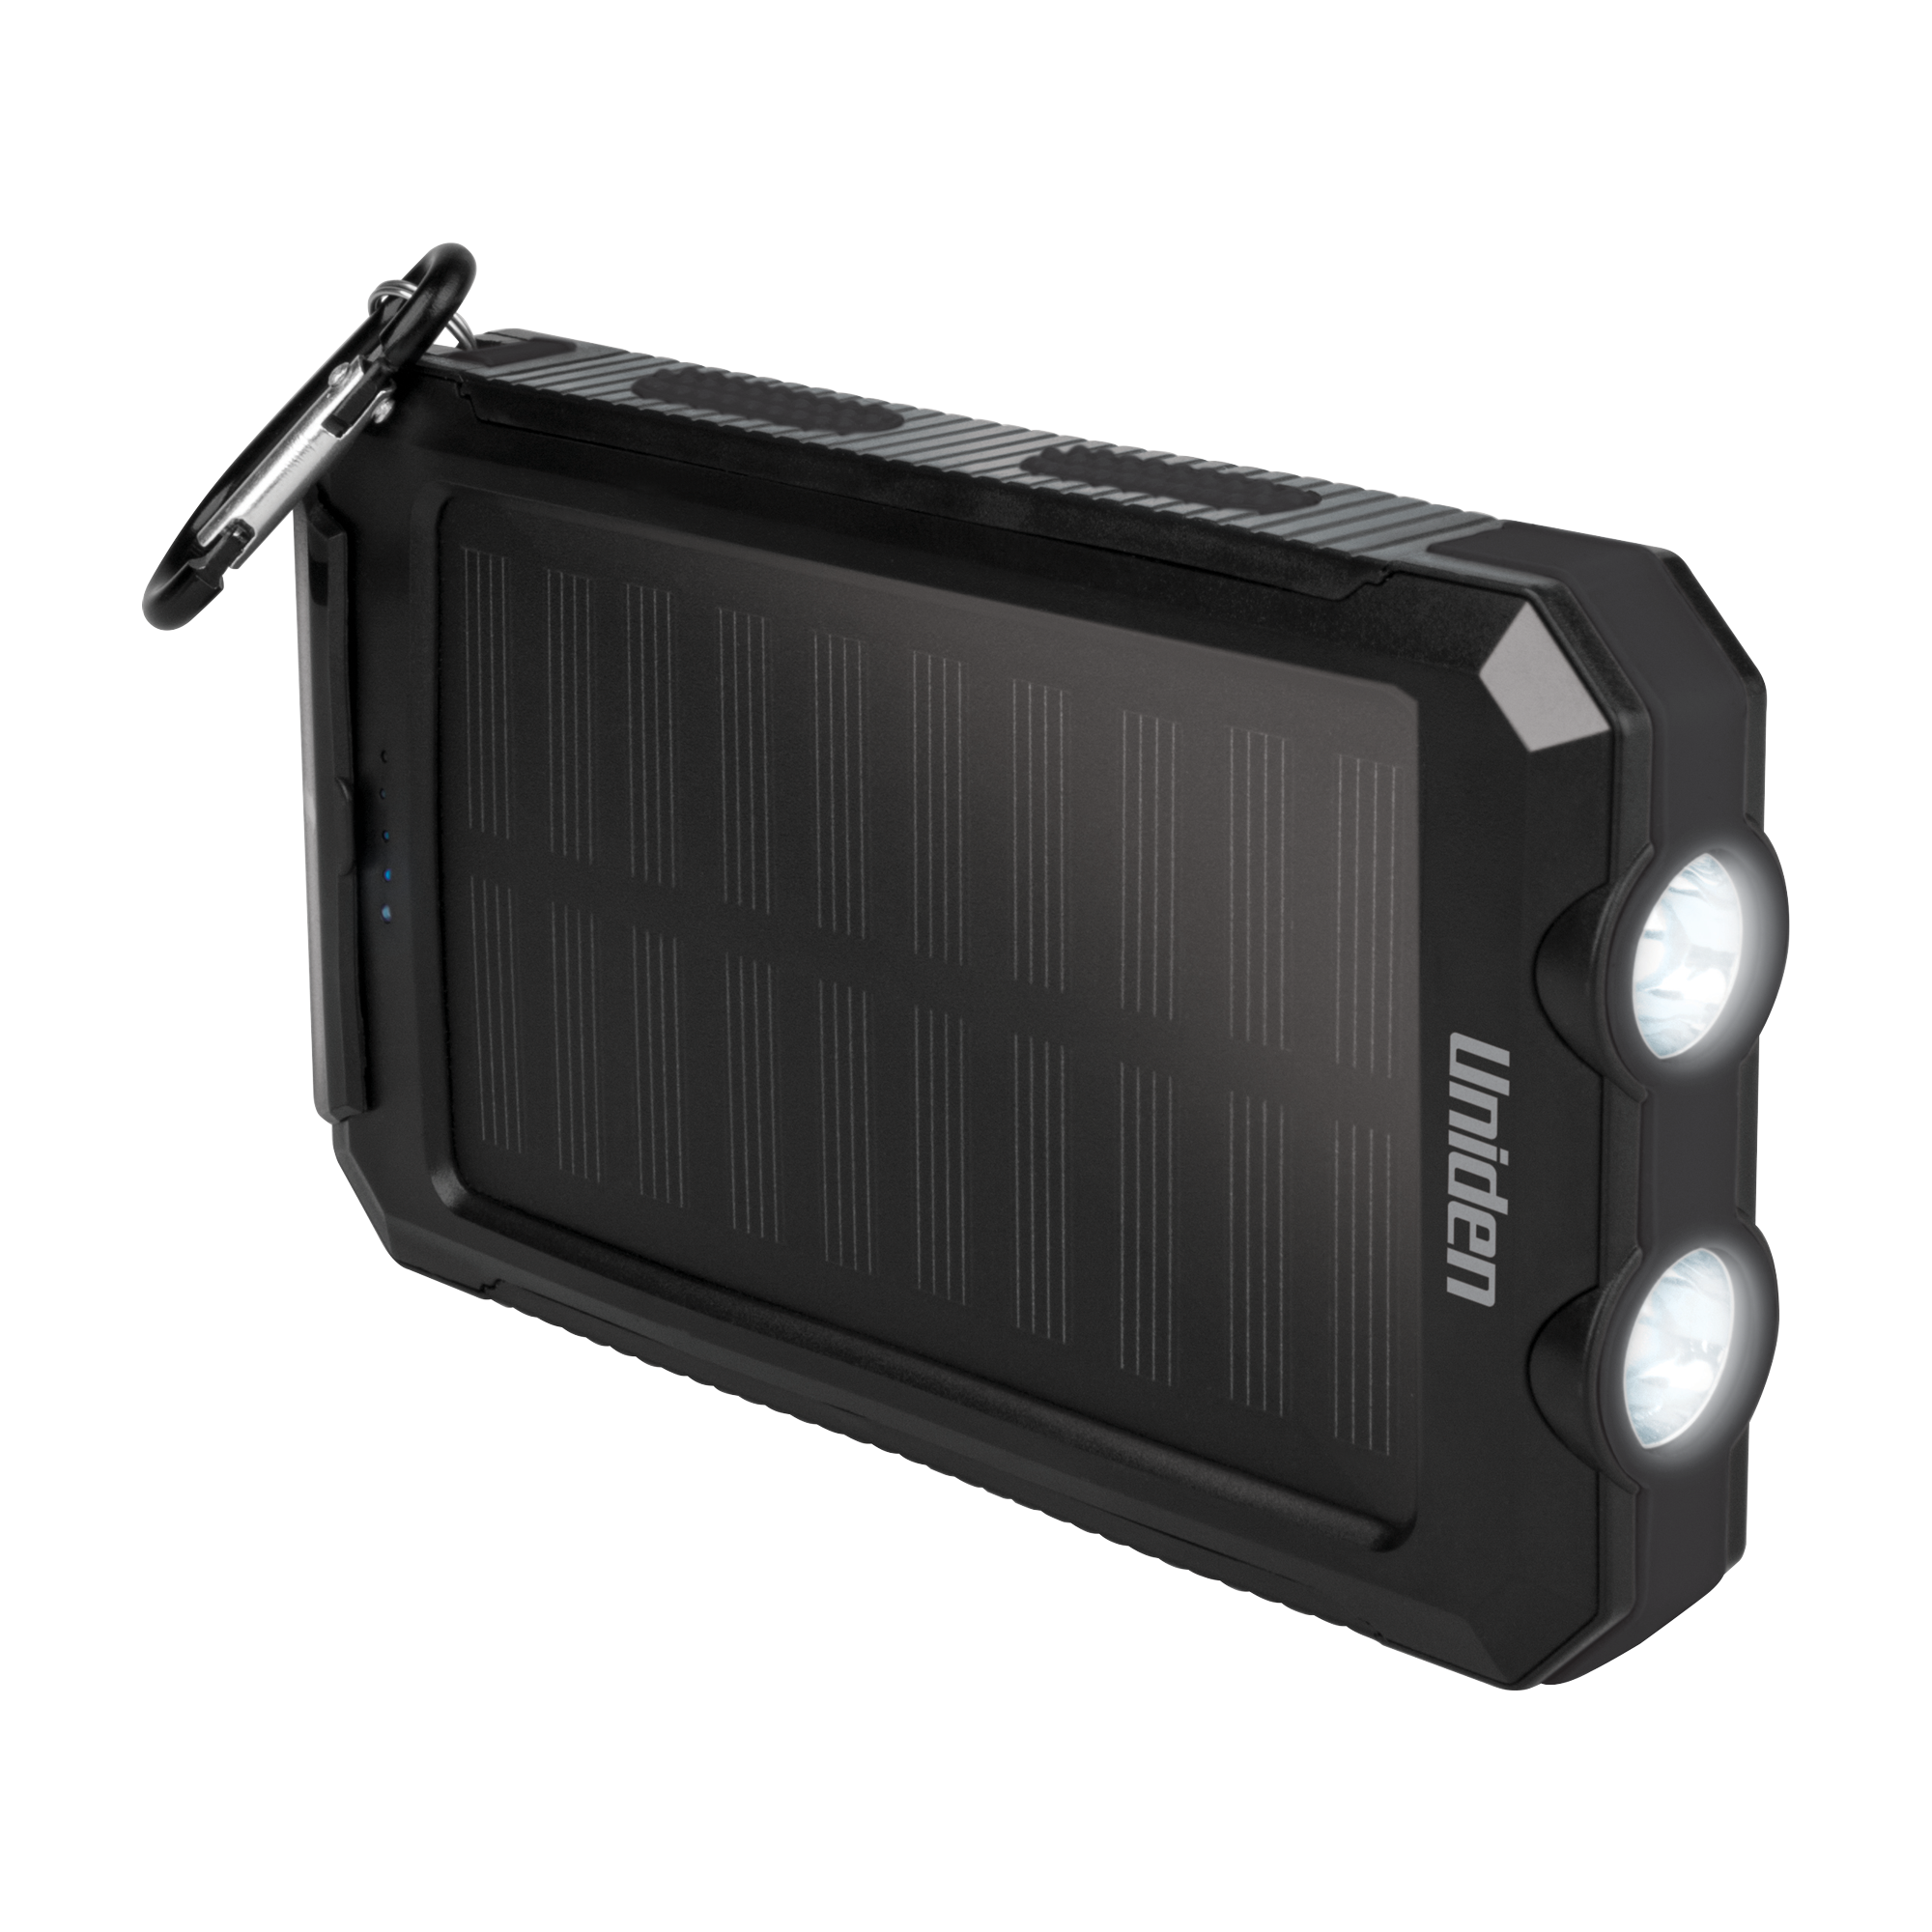 UPP80S Solar Powerbank